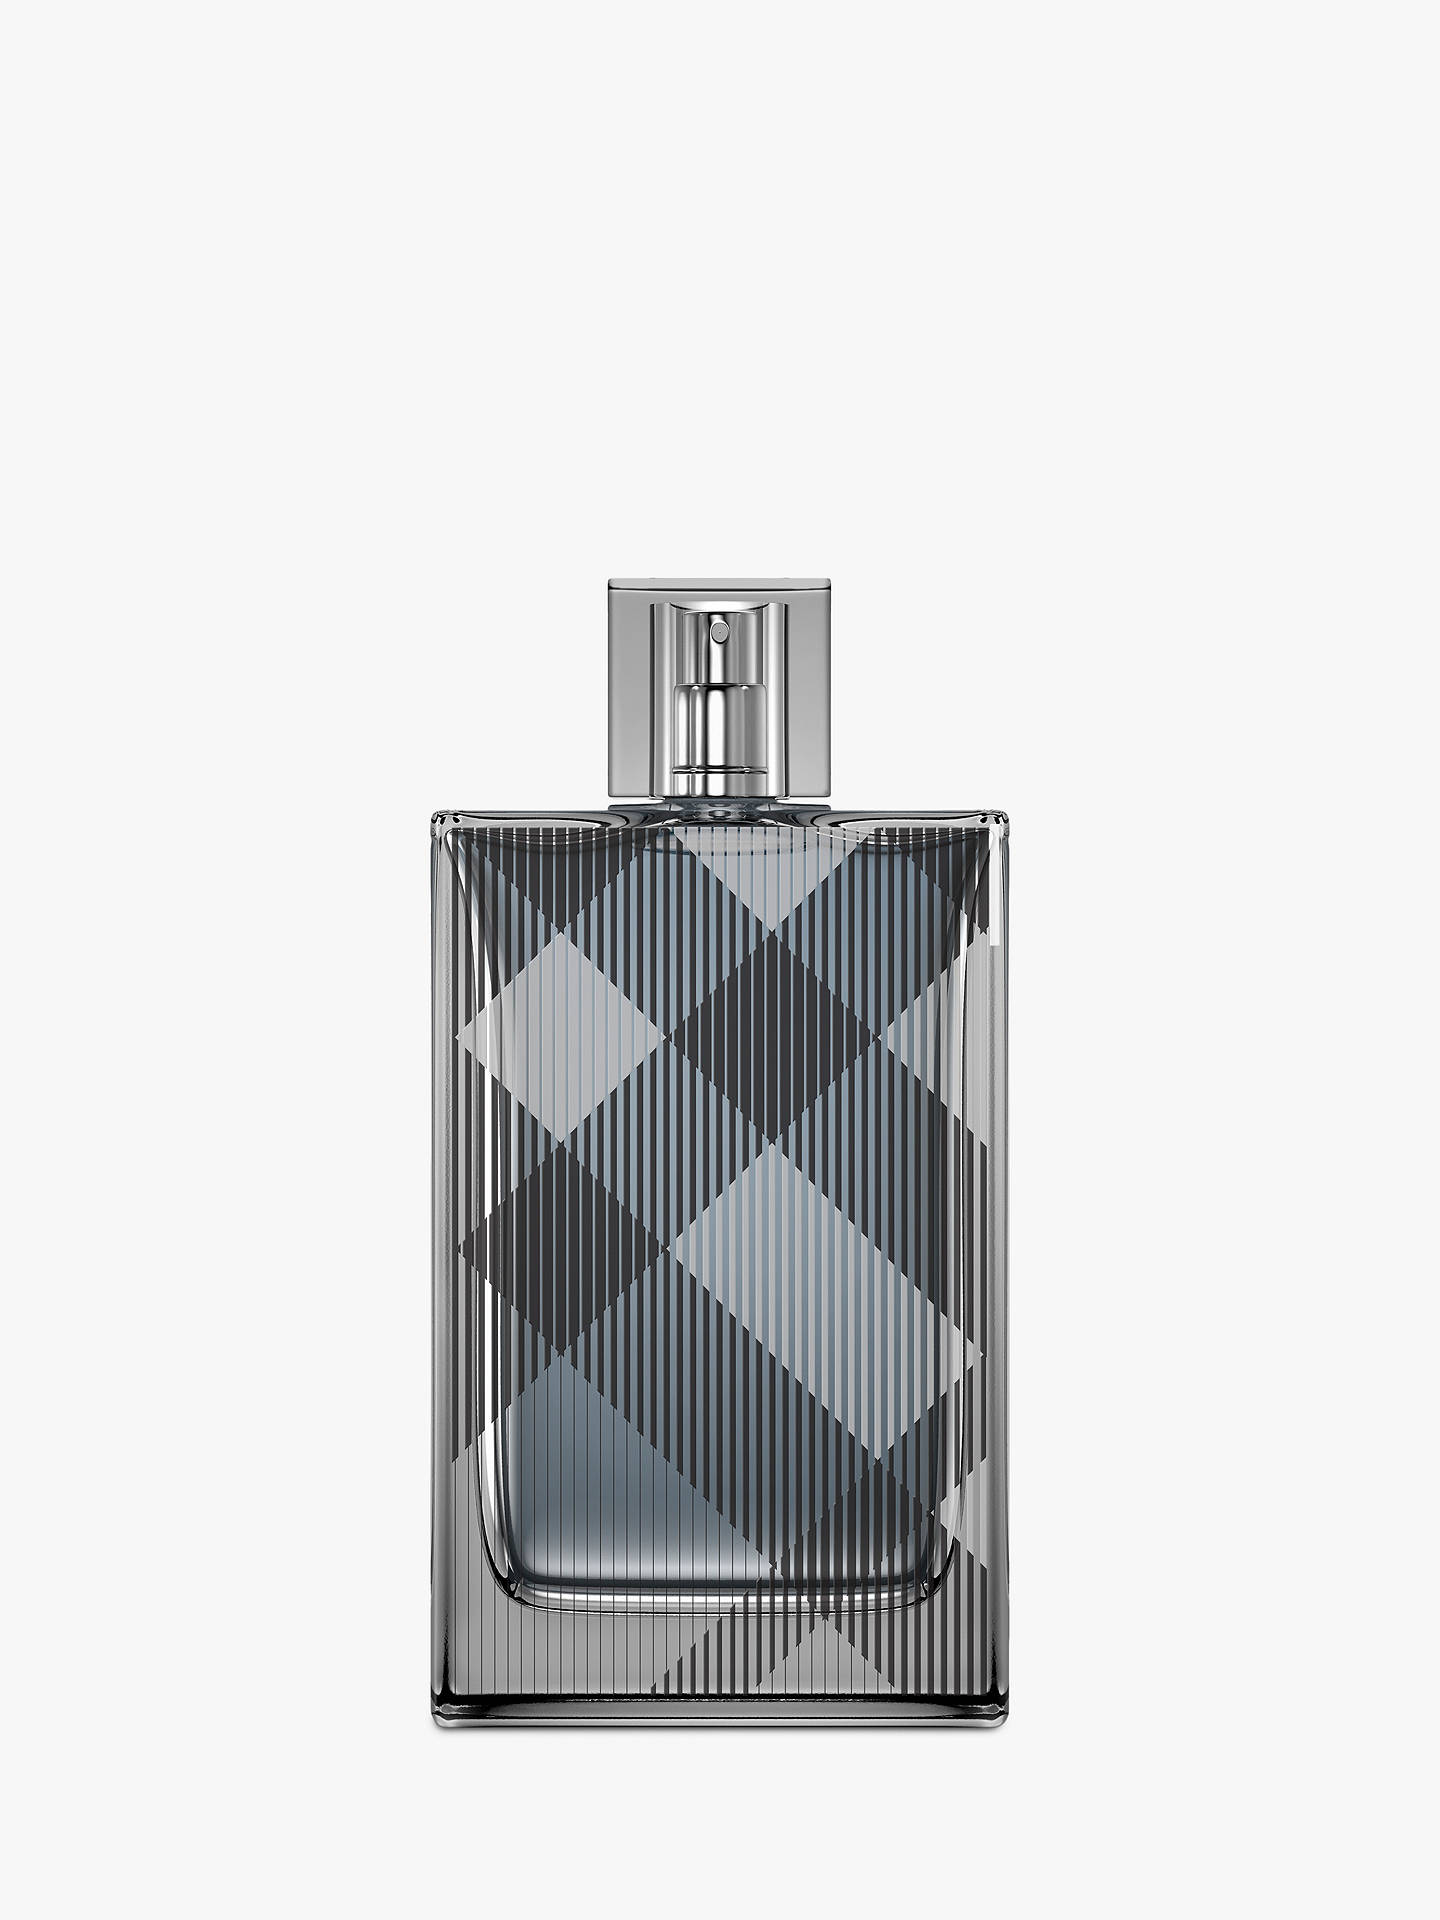 BuyBurberry Brit for Men Eau de Toilette, 100ml Online at johnlewis.com